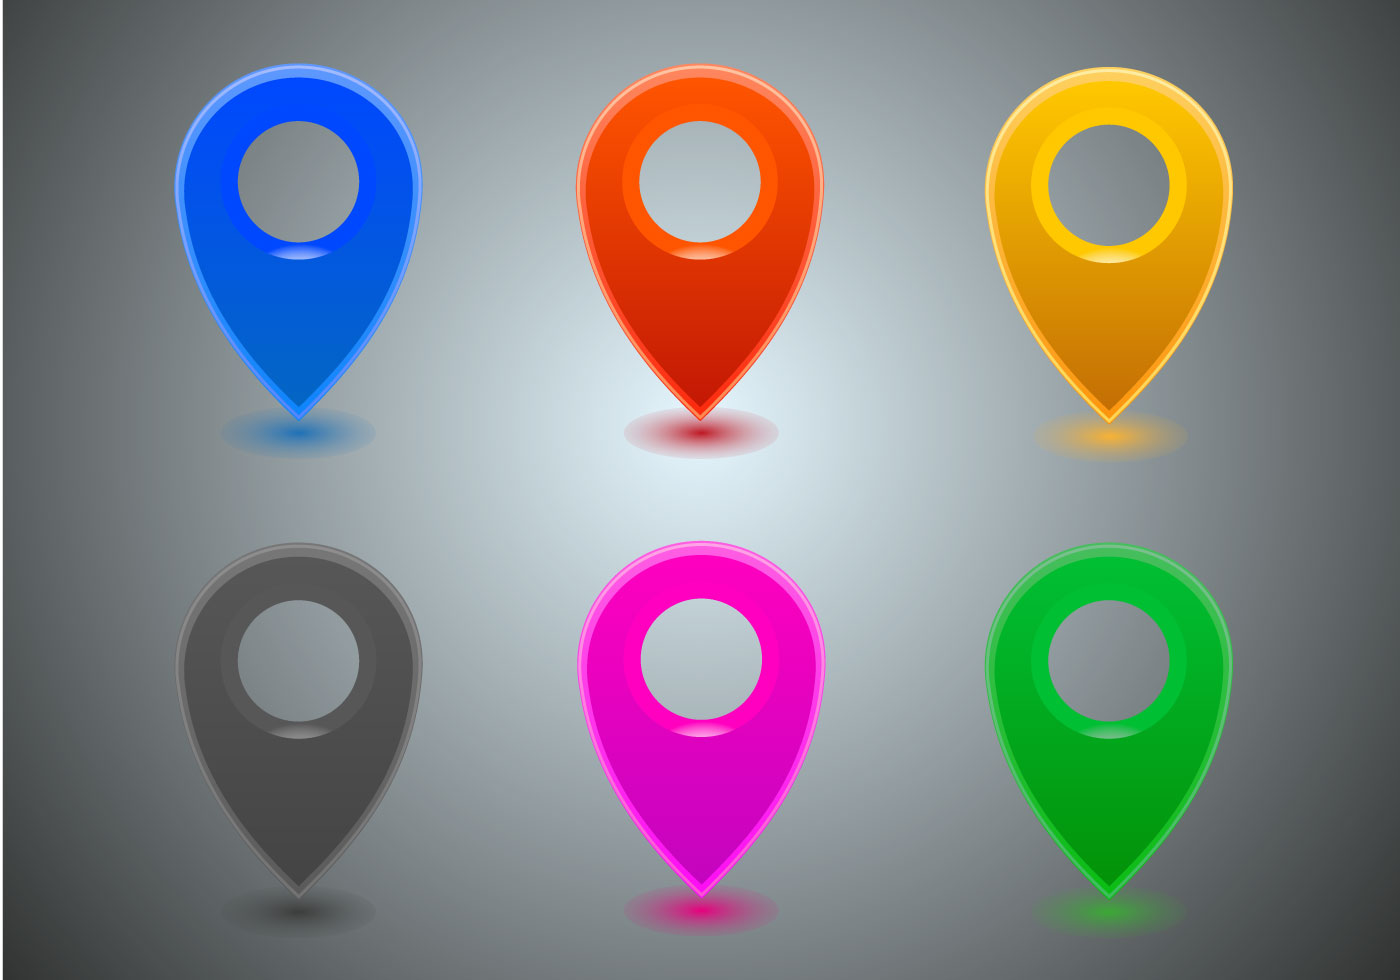 Location Position Icon Free Vector Graphic On Pixabay: Download Free Vector Art, Stock